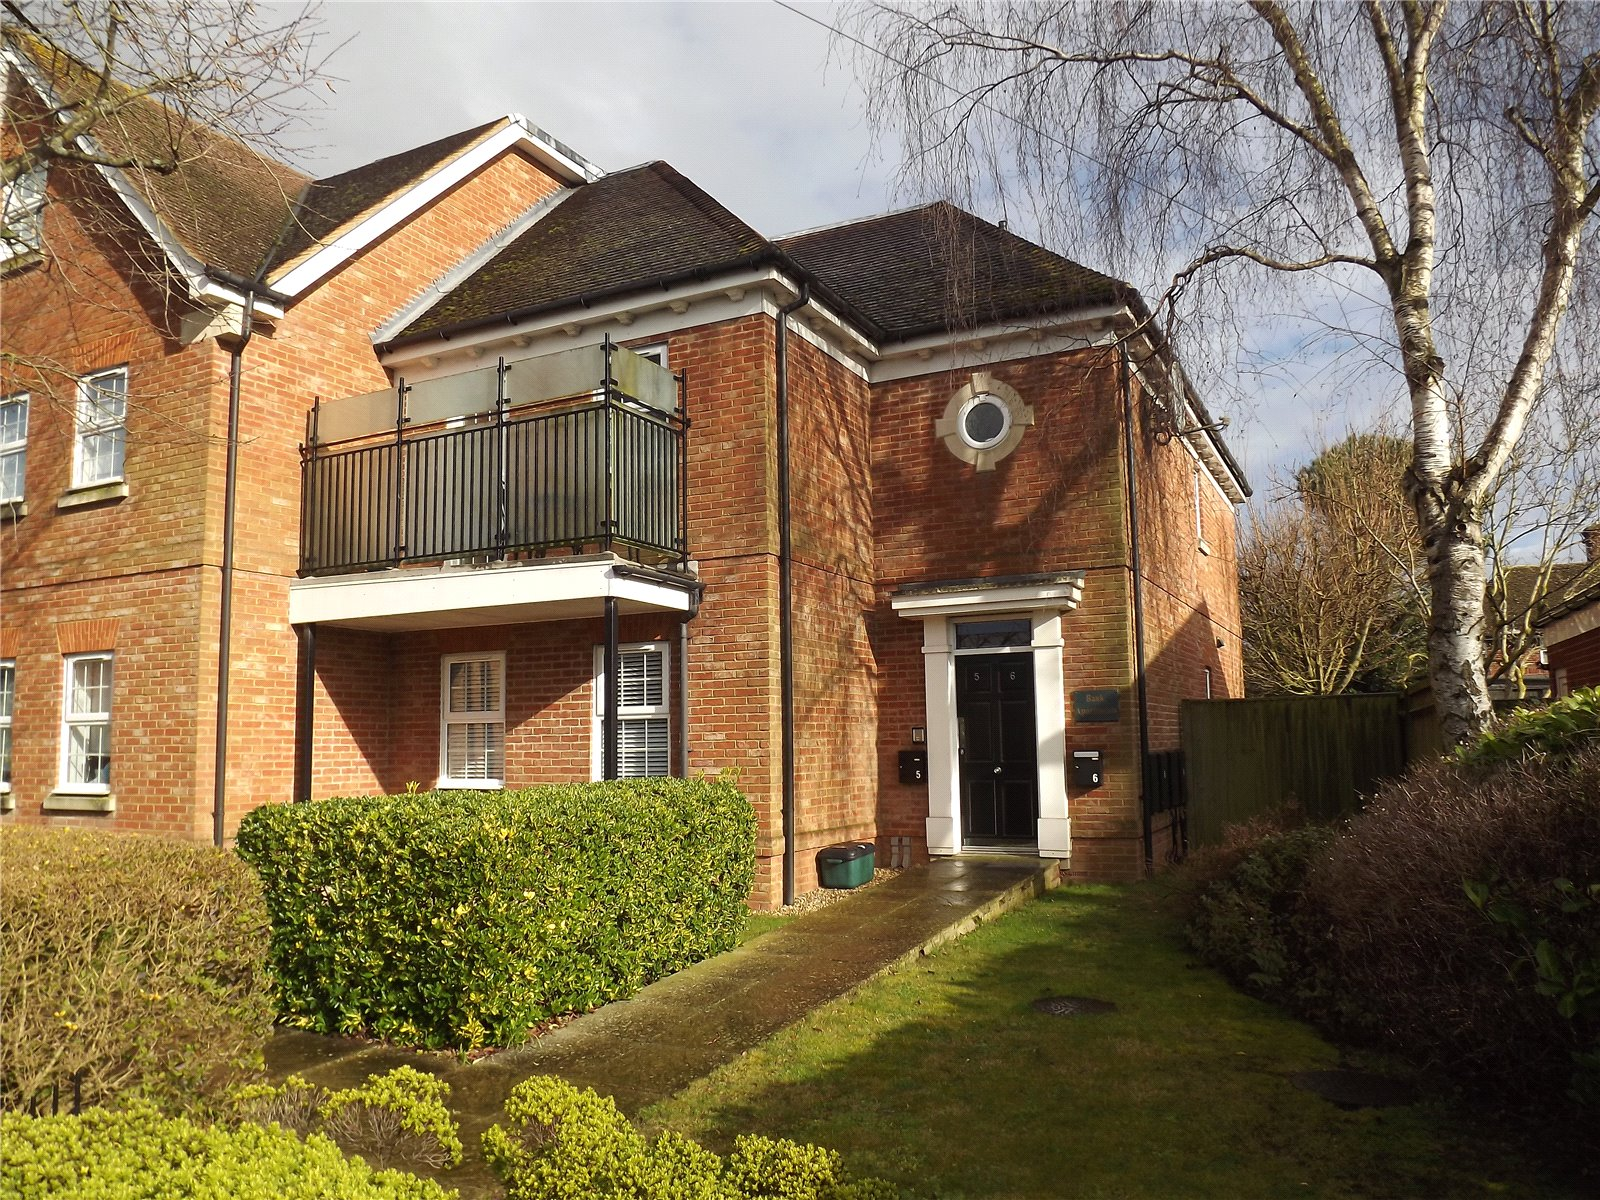 2 Bedrooms Flat for sale in Bank Apartments, Dean Street, Marlow, Buckinghamshire, SL7